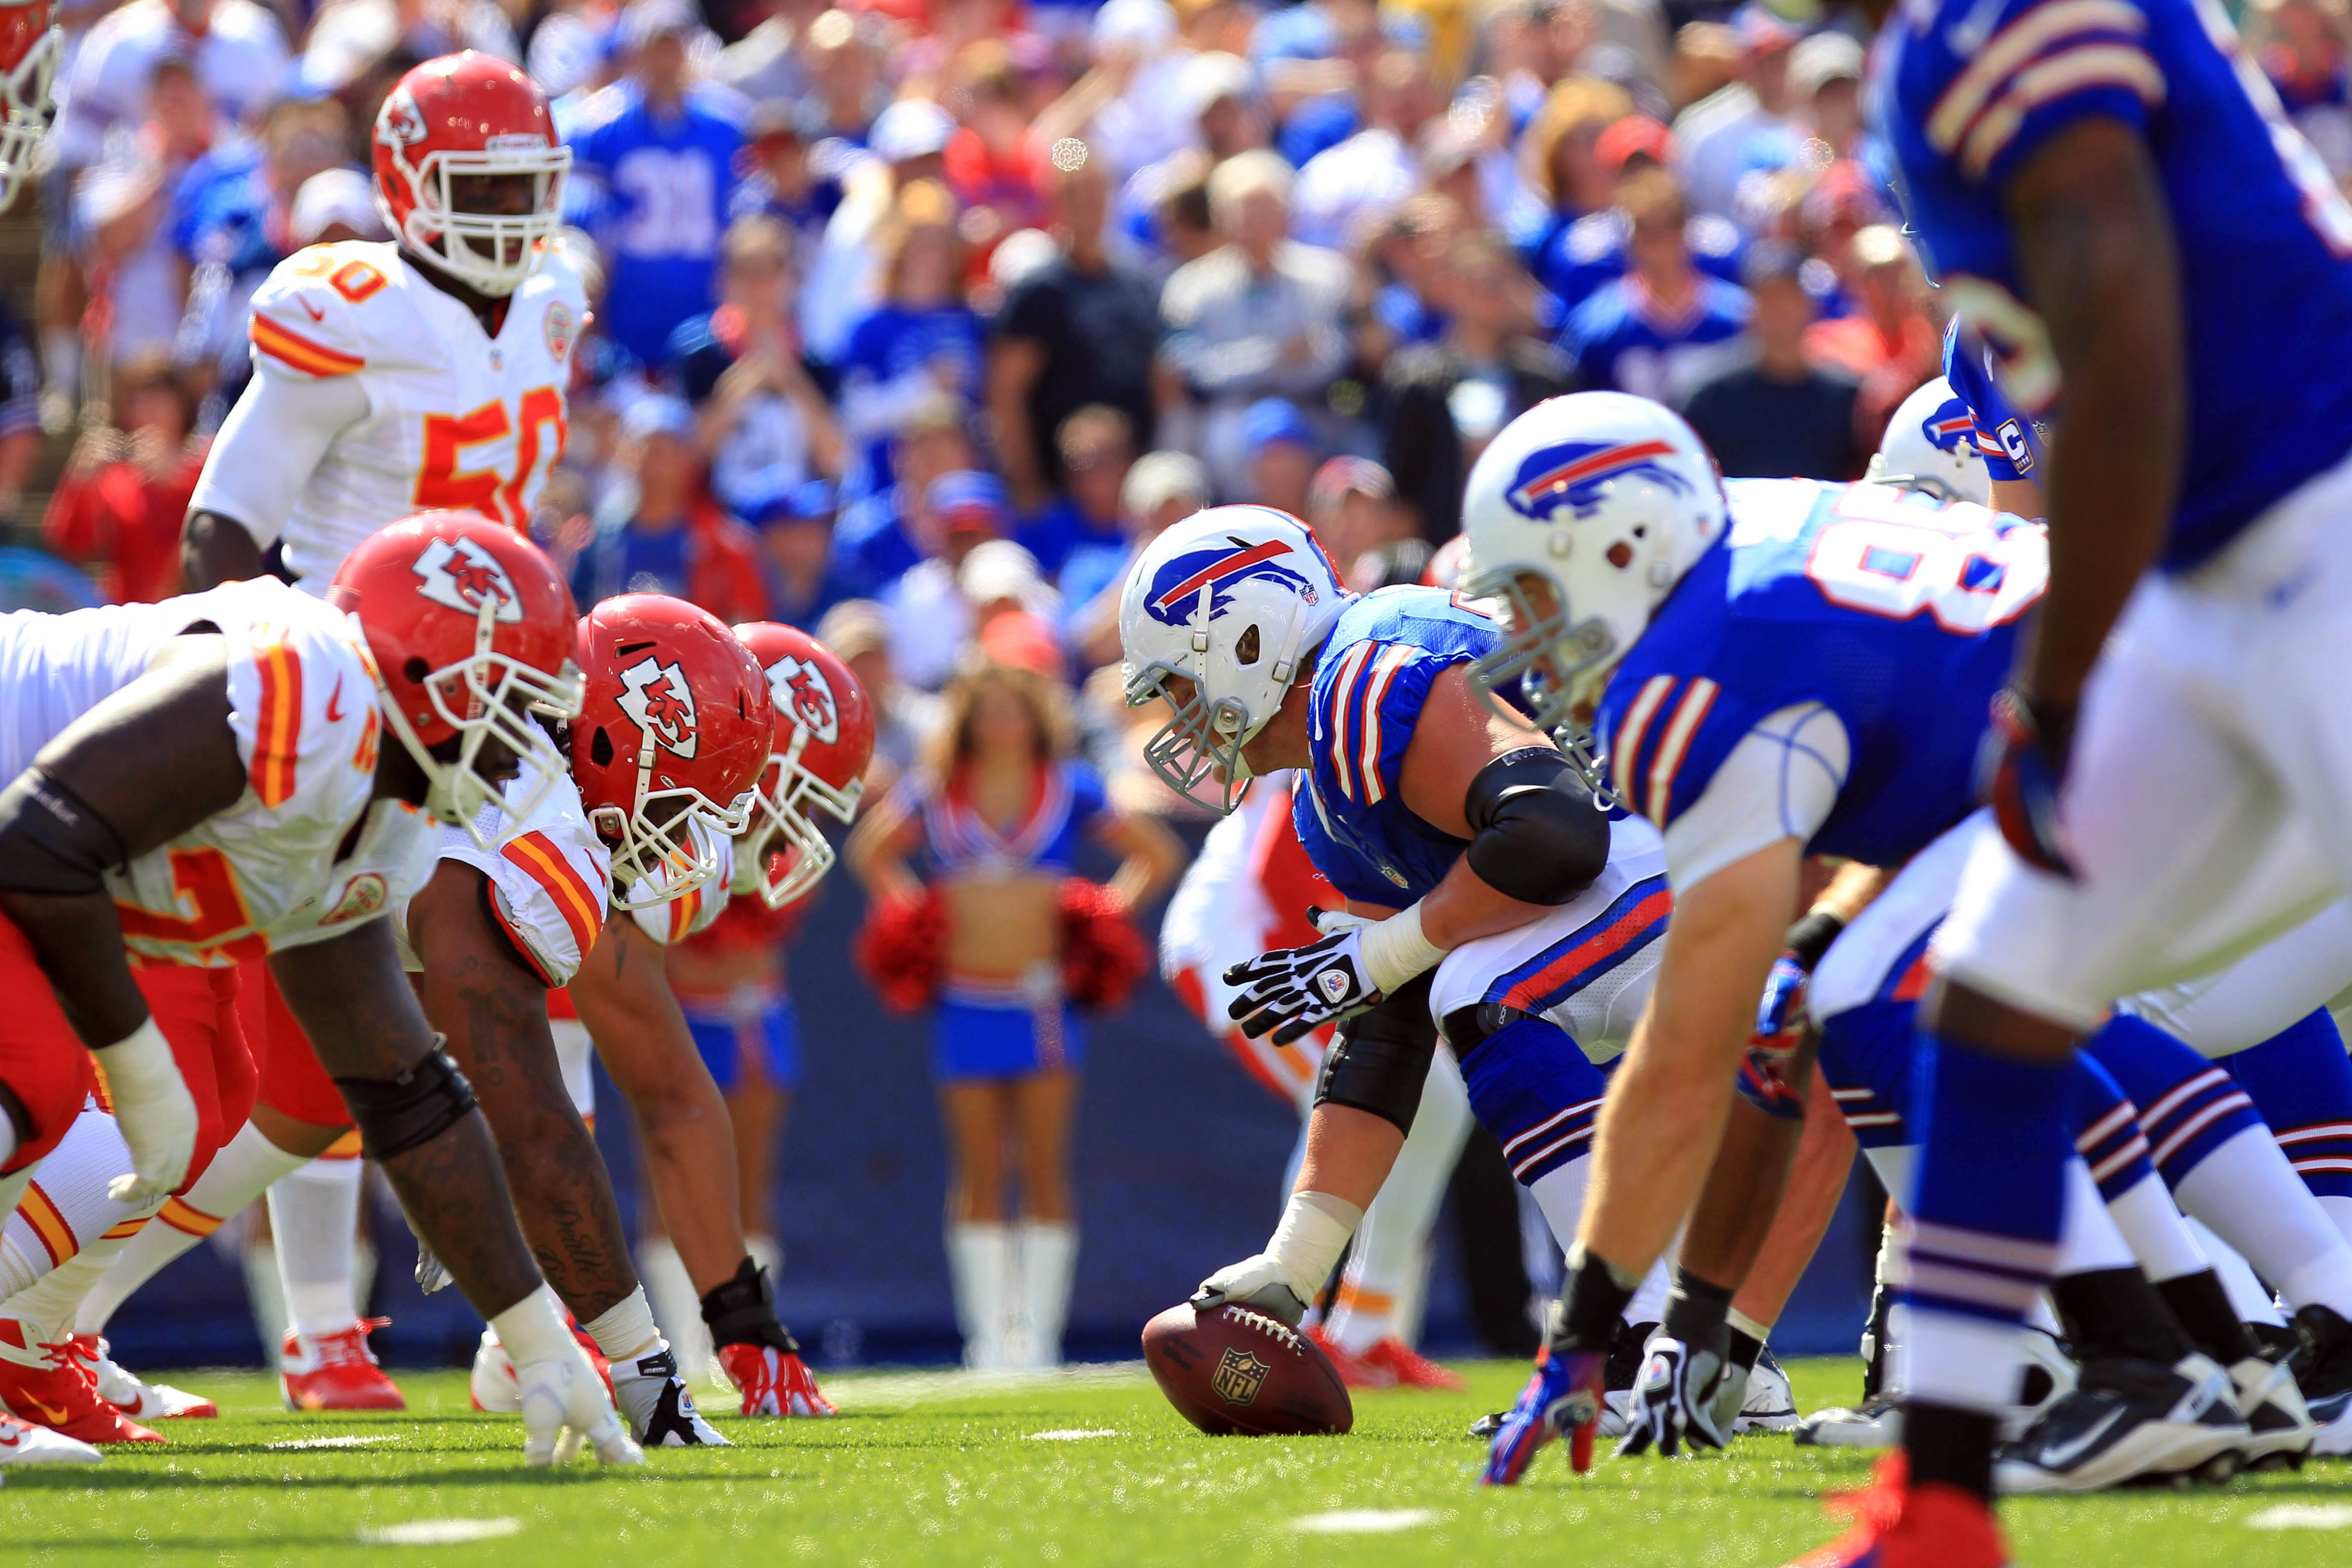 Sep 16, 2012; Orchard Park, NY, USA; The Kansas City Chiefs defense lines up against the Buffalo Bills offense during the first quarter at Ralph Wilson Stadium. Mandatory Credit: Kevin Hoffman-US PRESSWIRE